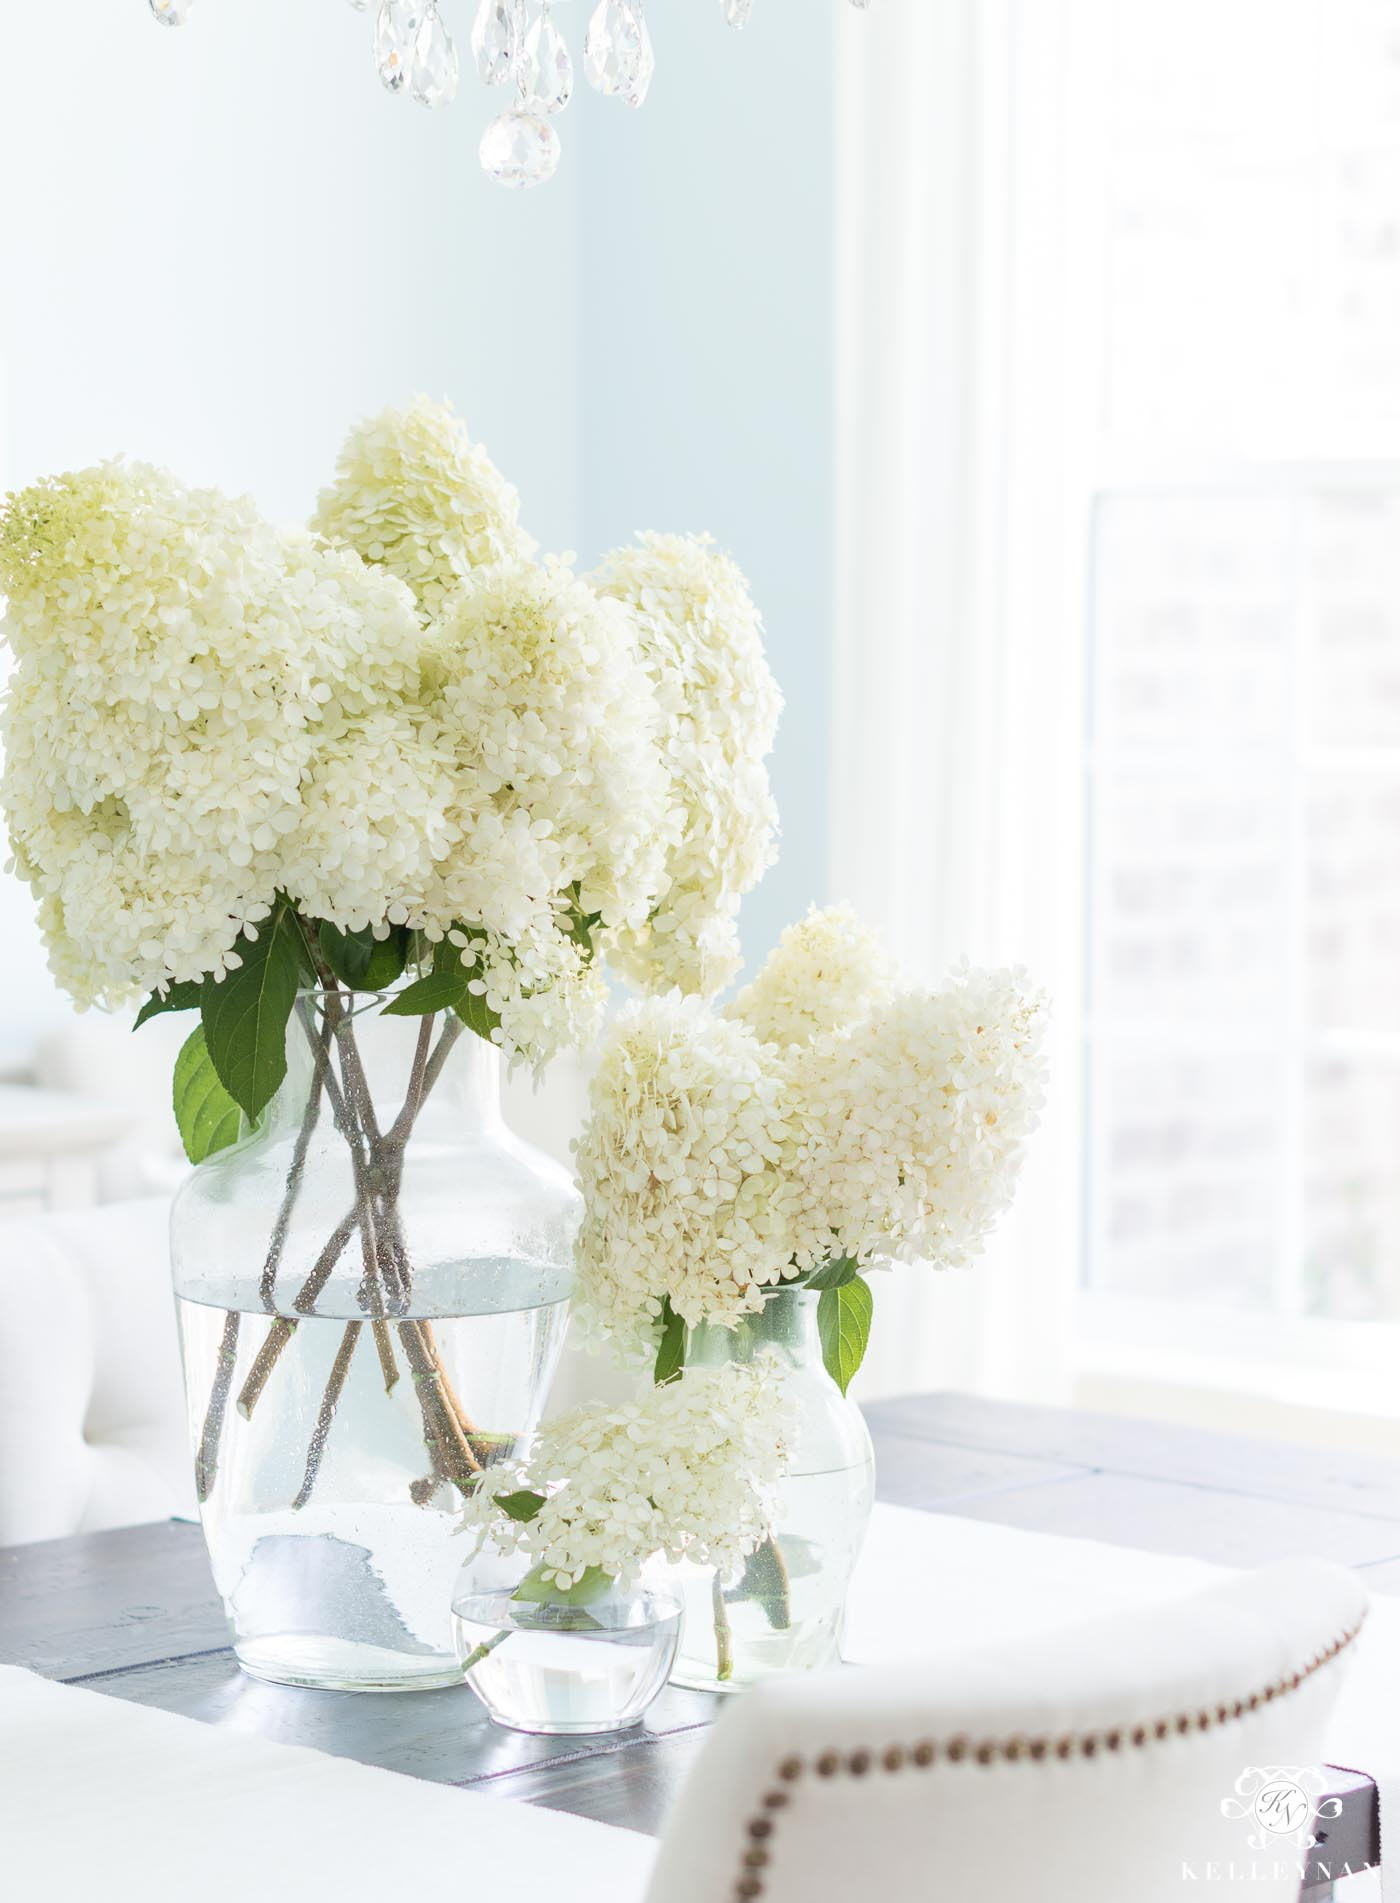 Limelight Hydrangeas Cut Into Flower Arrangements